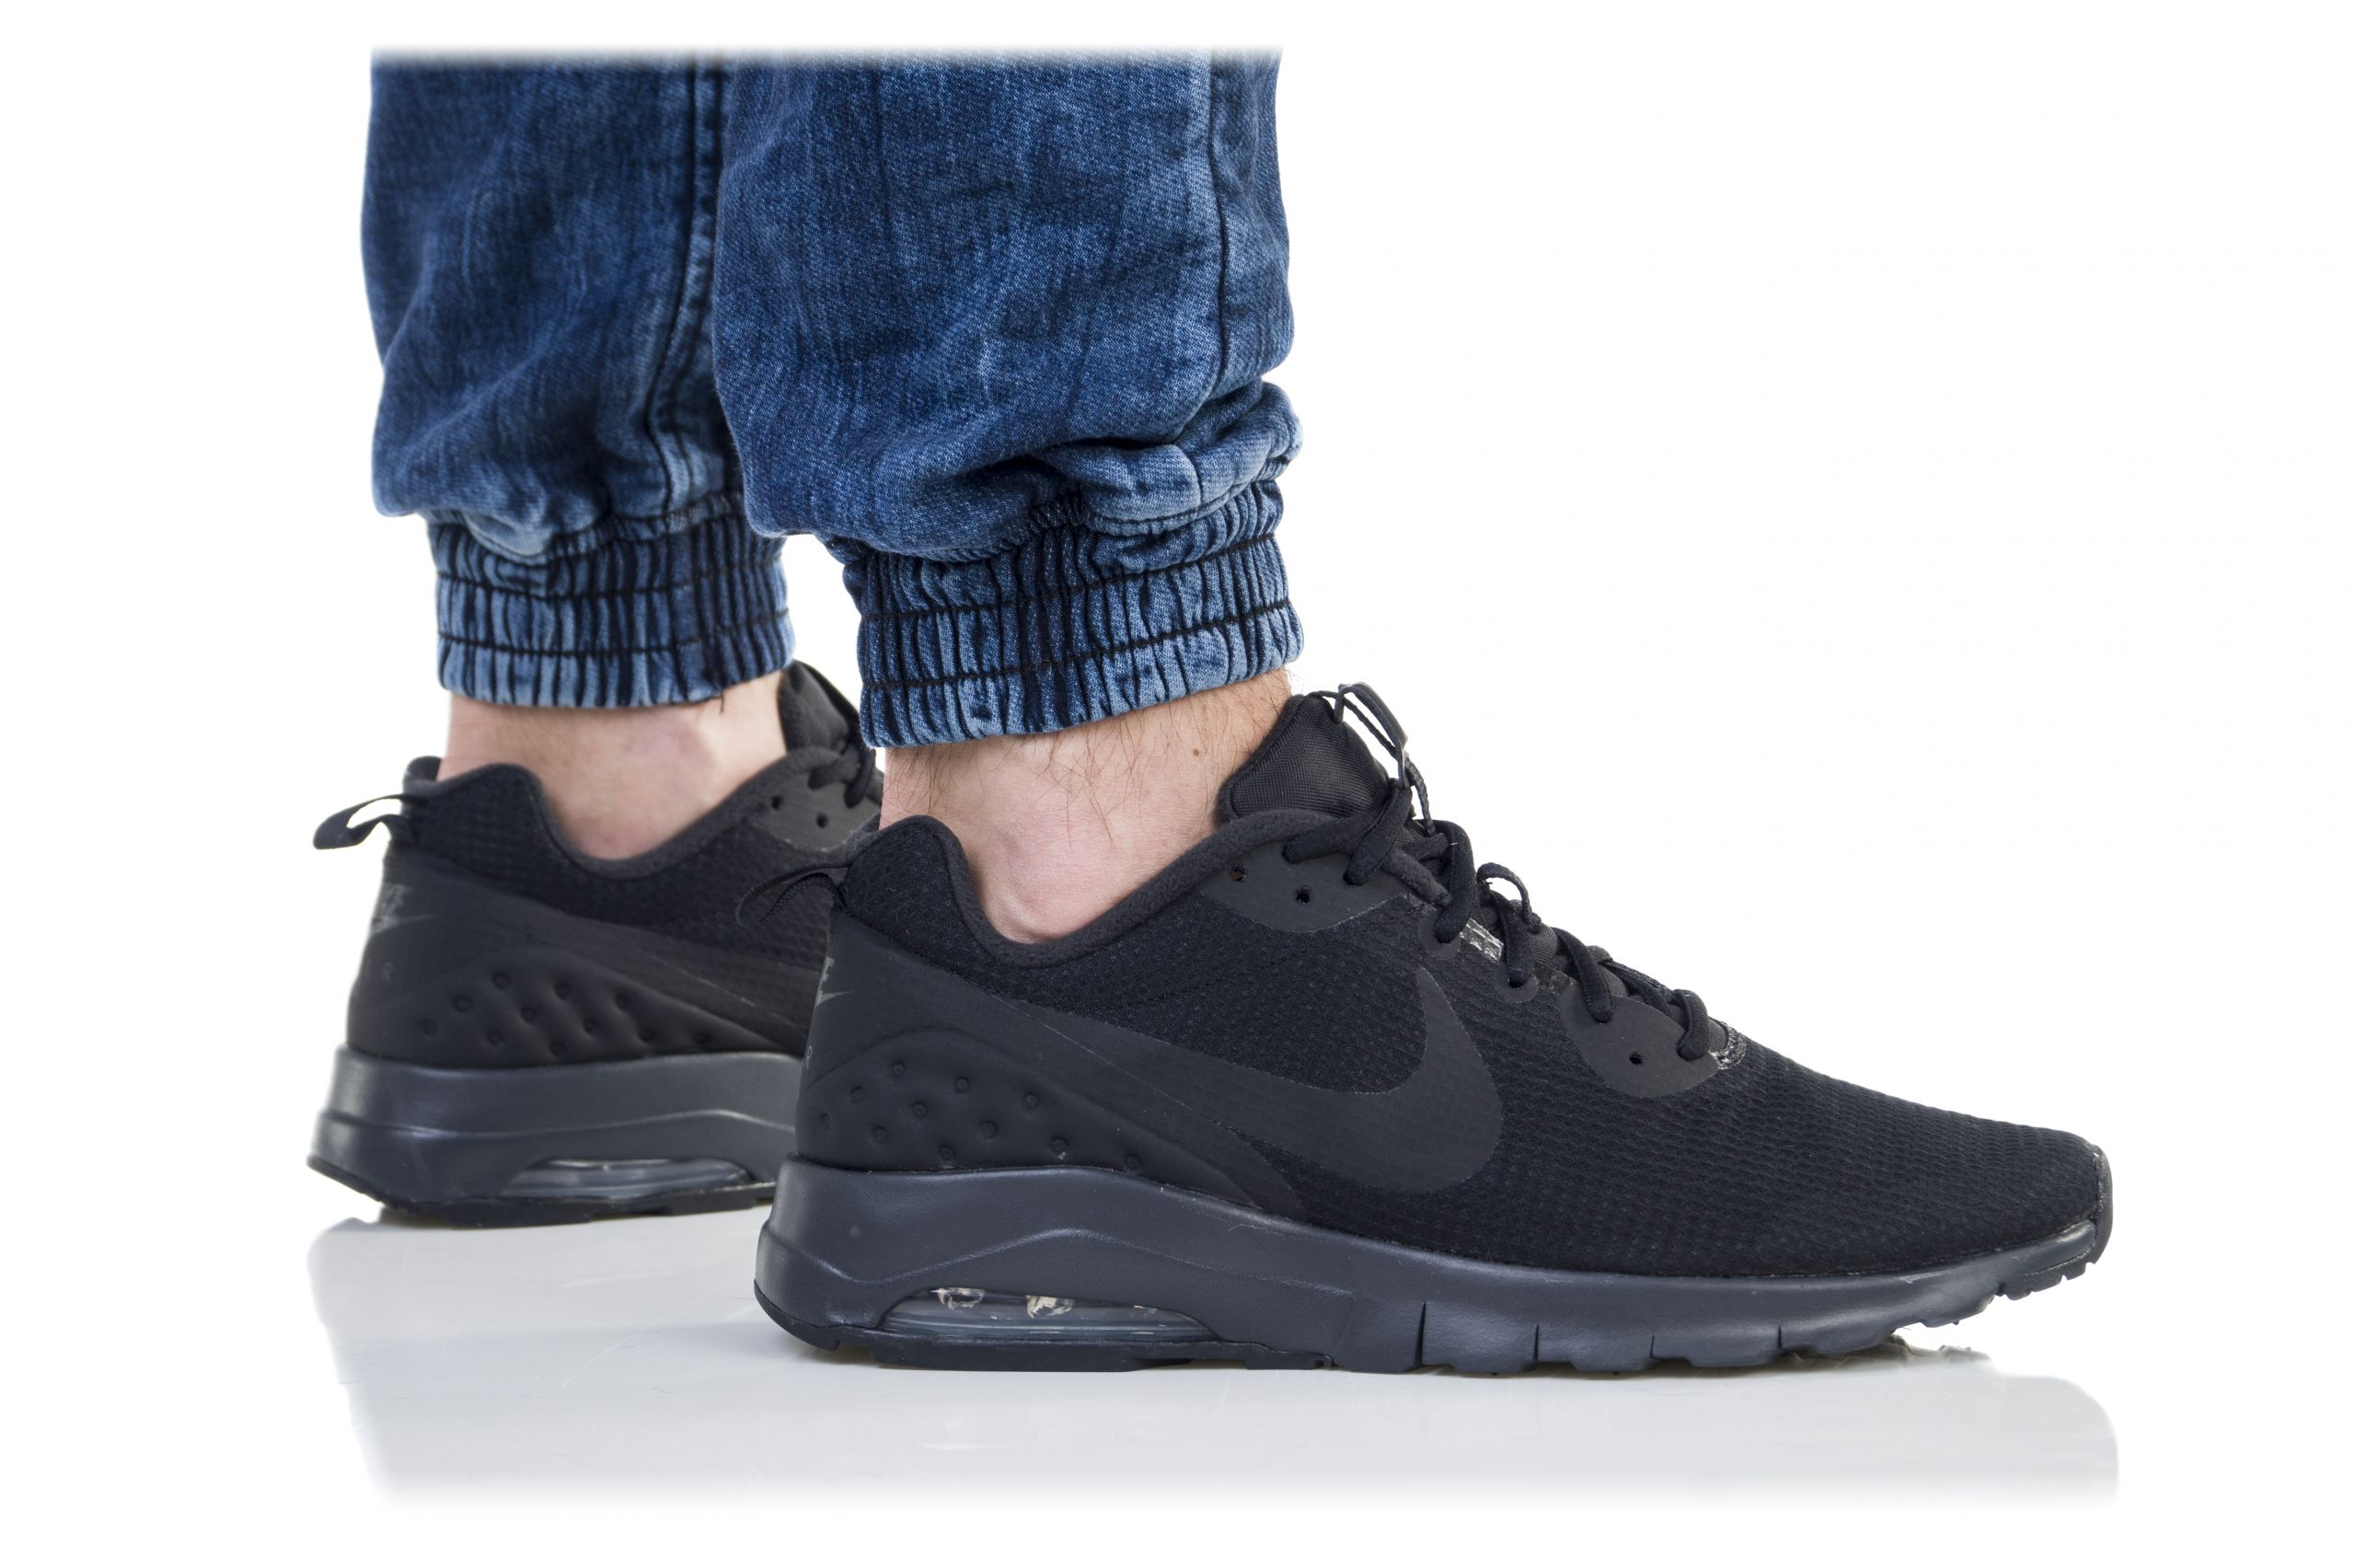 finest selection 966e2 3c749 BUTY NIKE MĘSKIE AIR MAX MOTION LW SE 844836-008